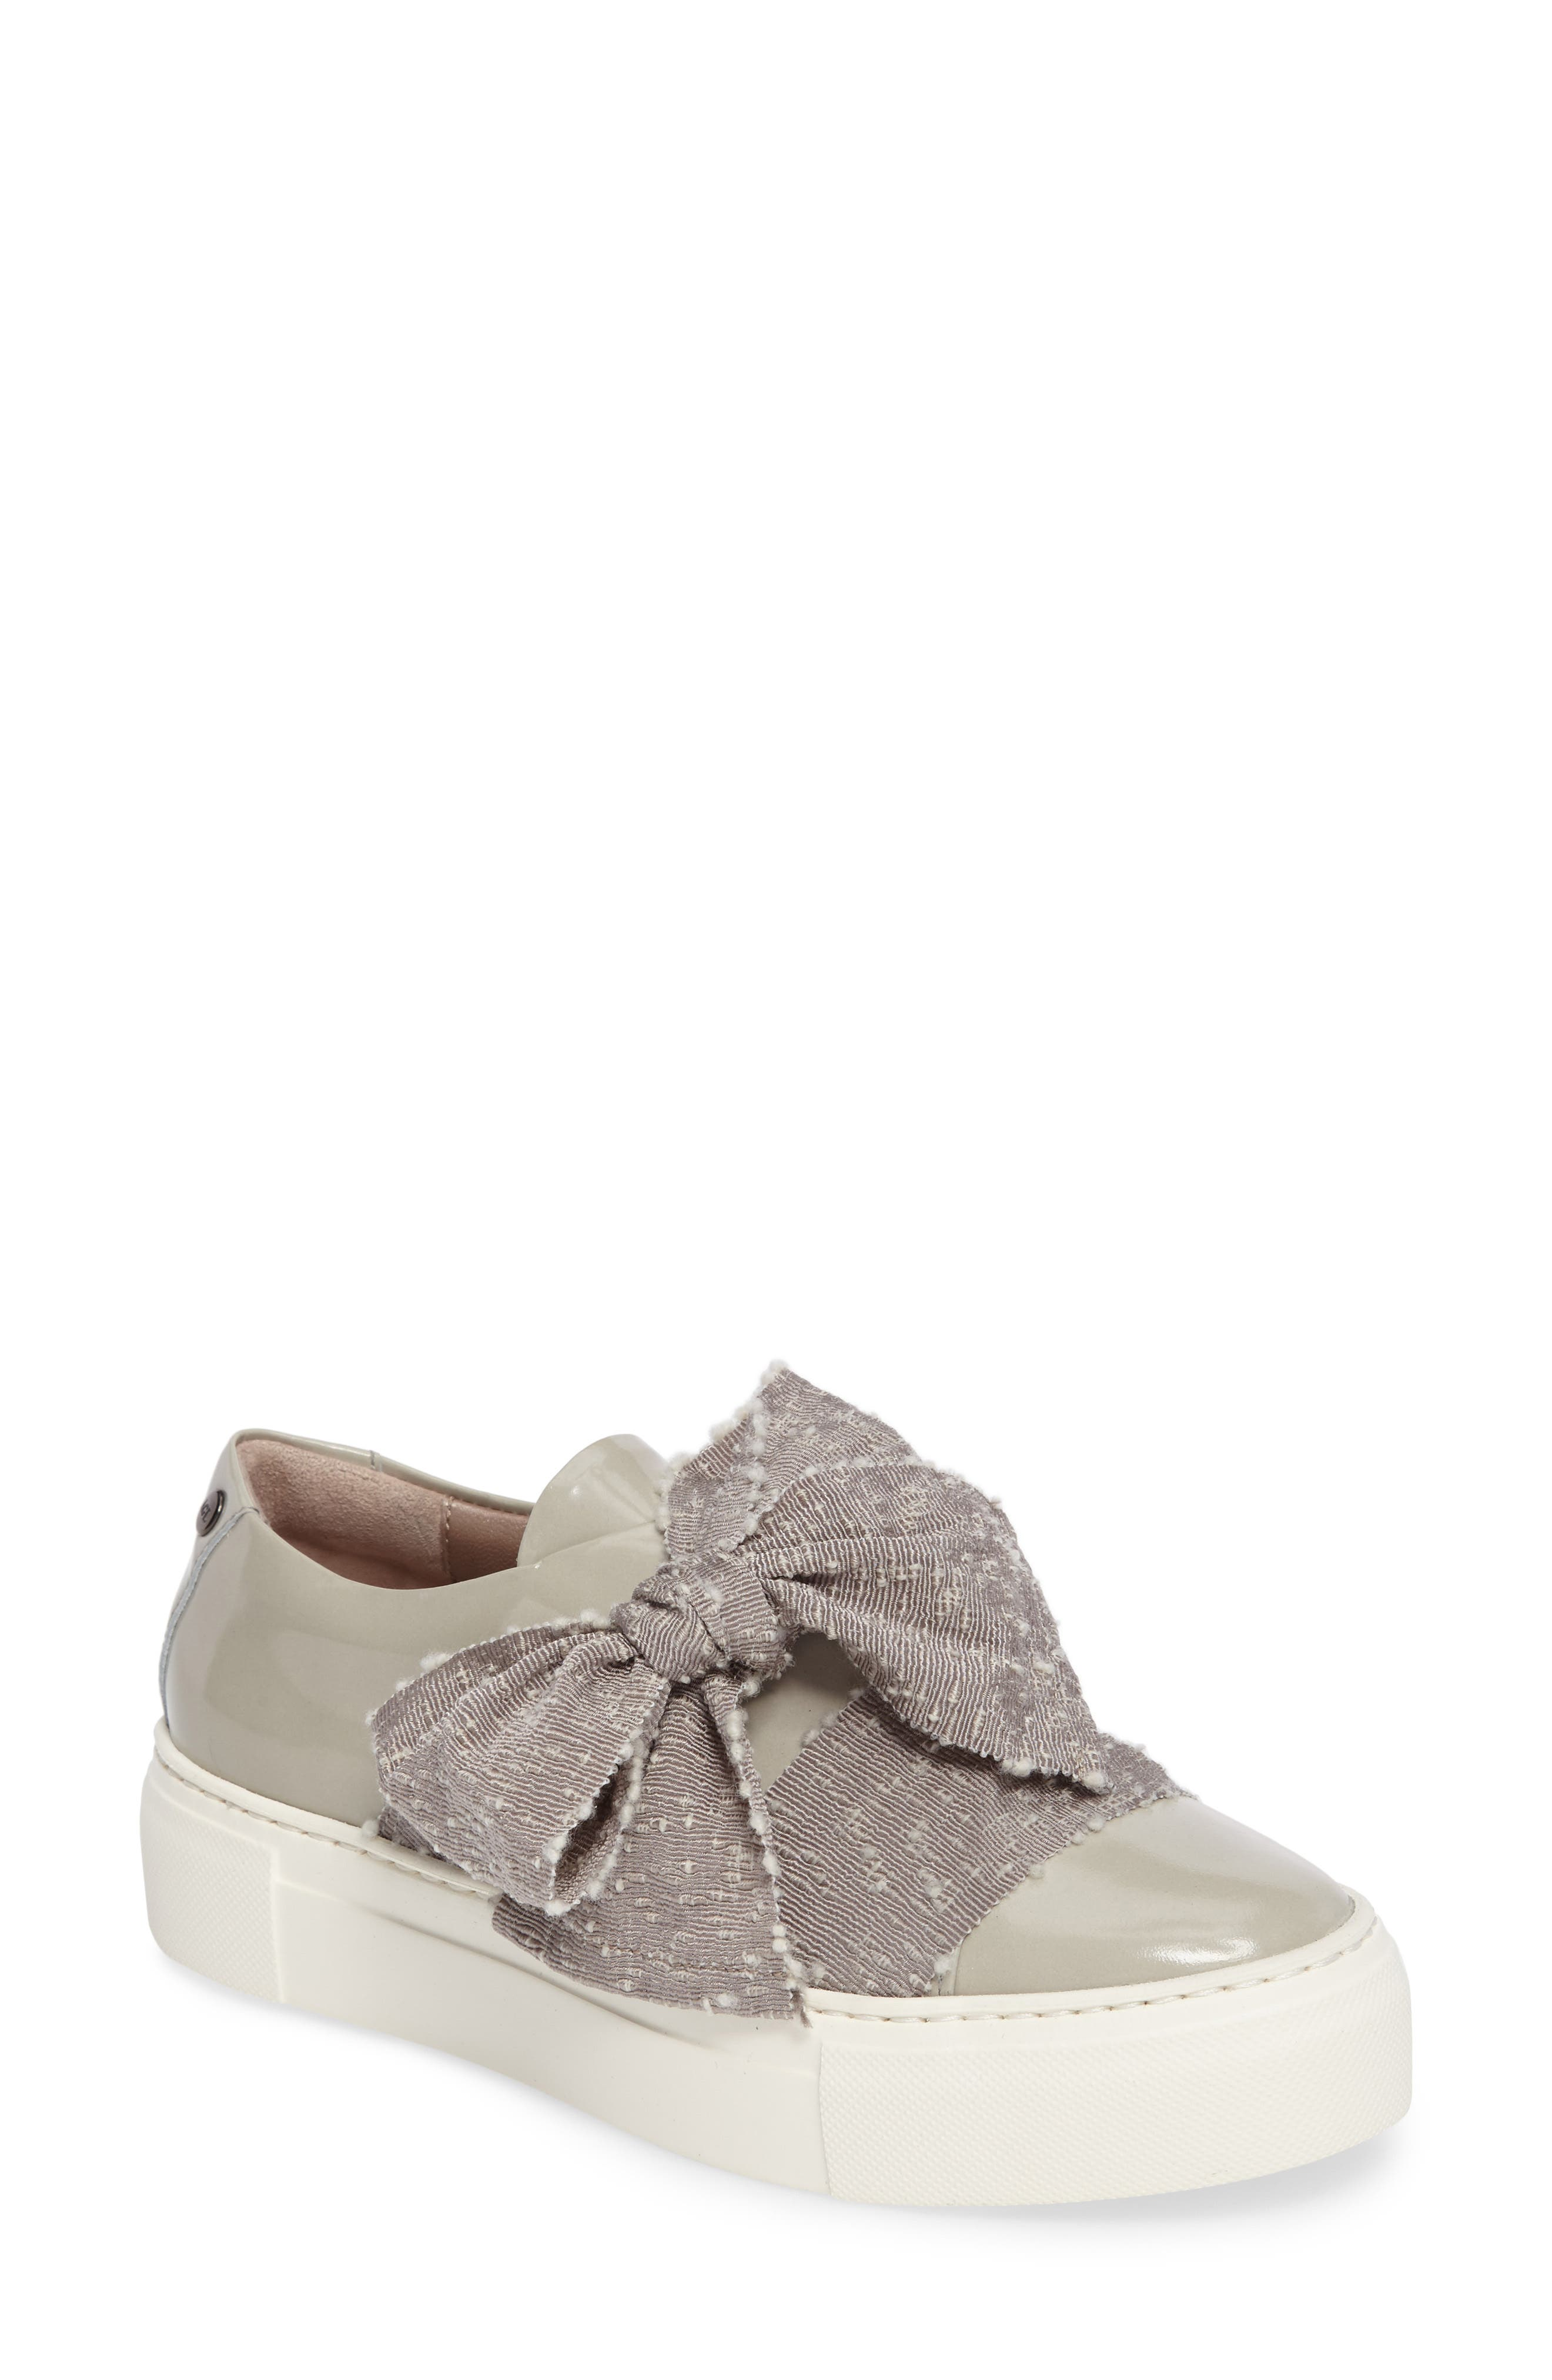 Bow Platform Sneaker,                             Main thumbnail 1, color,                             Marble Leather